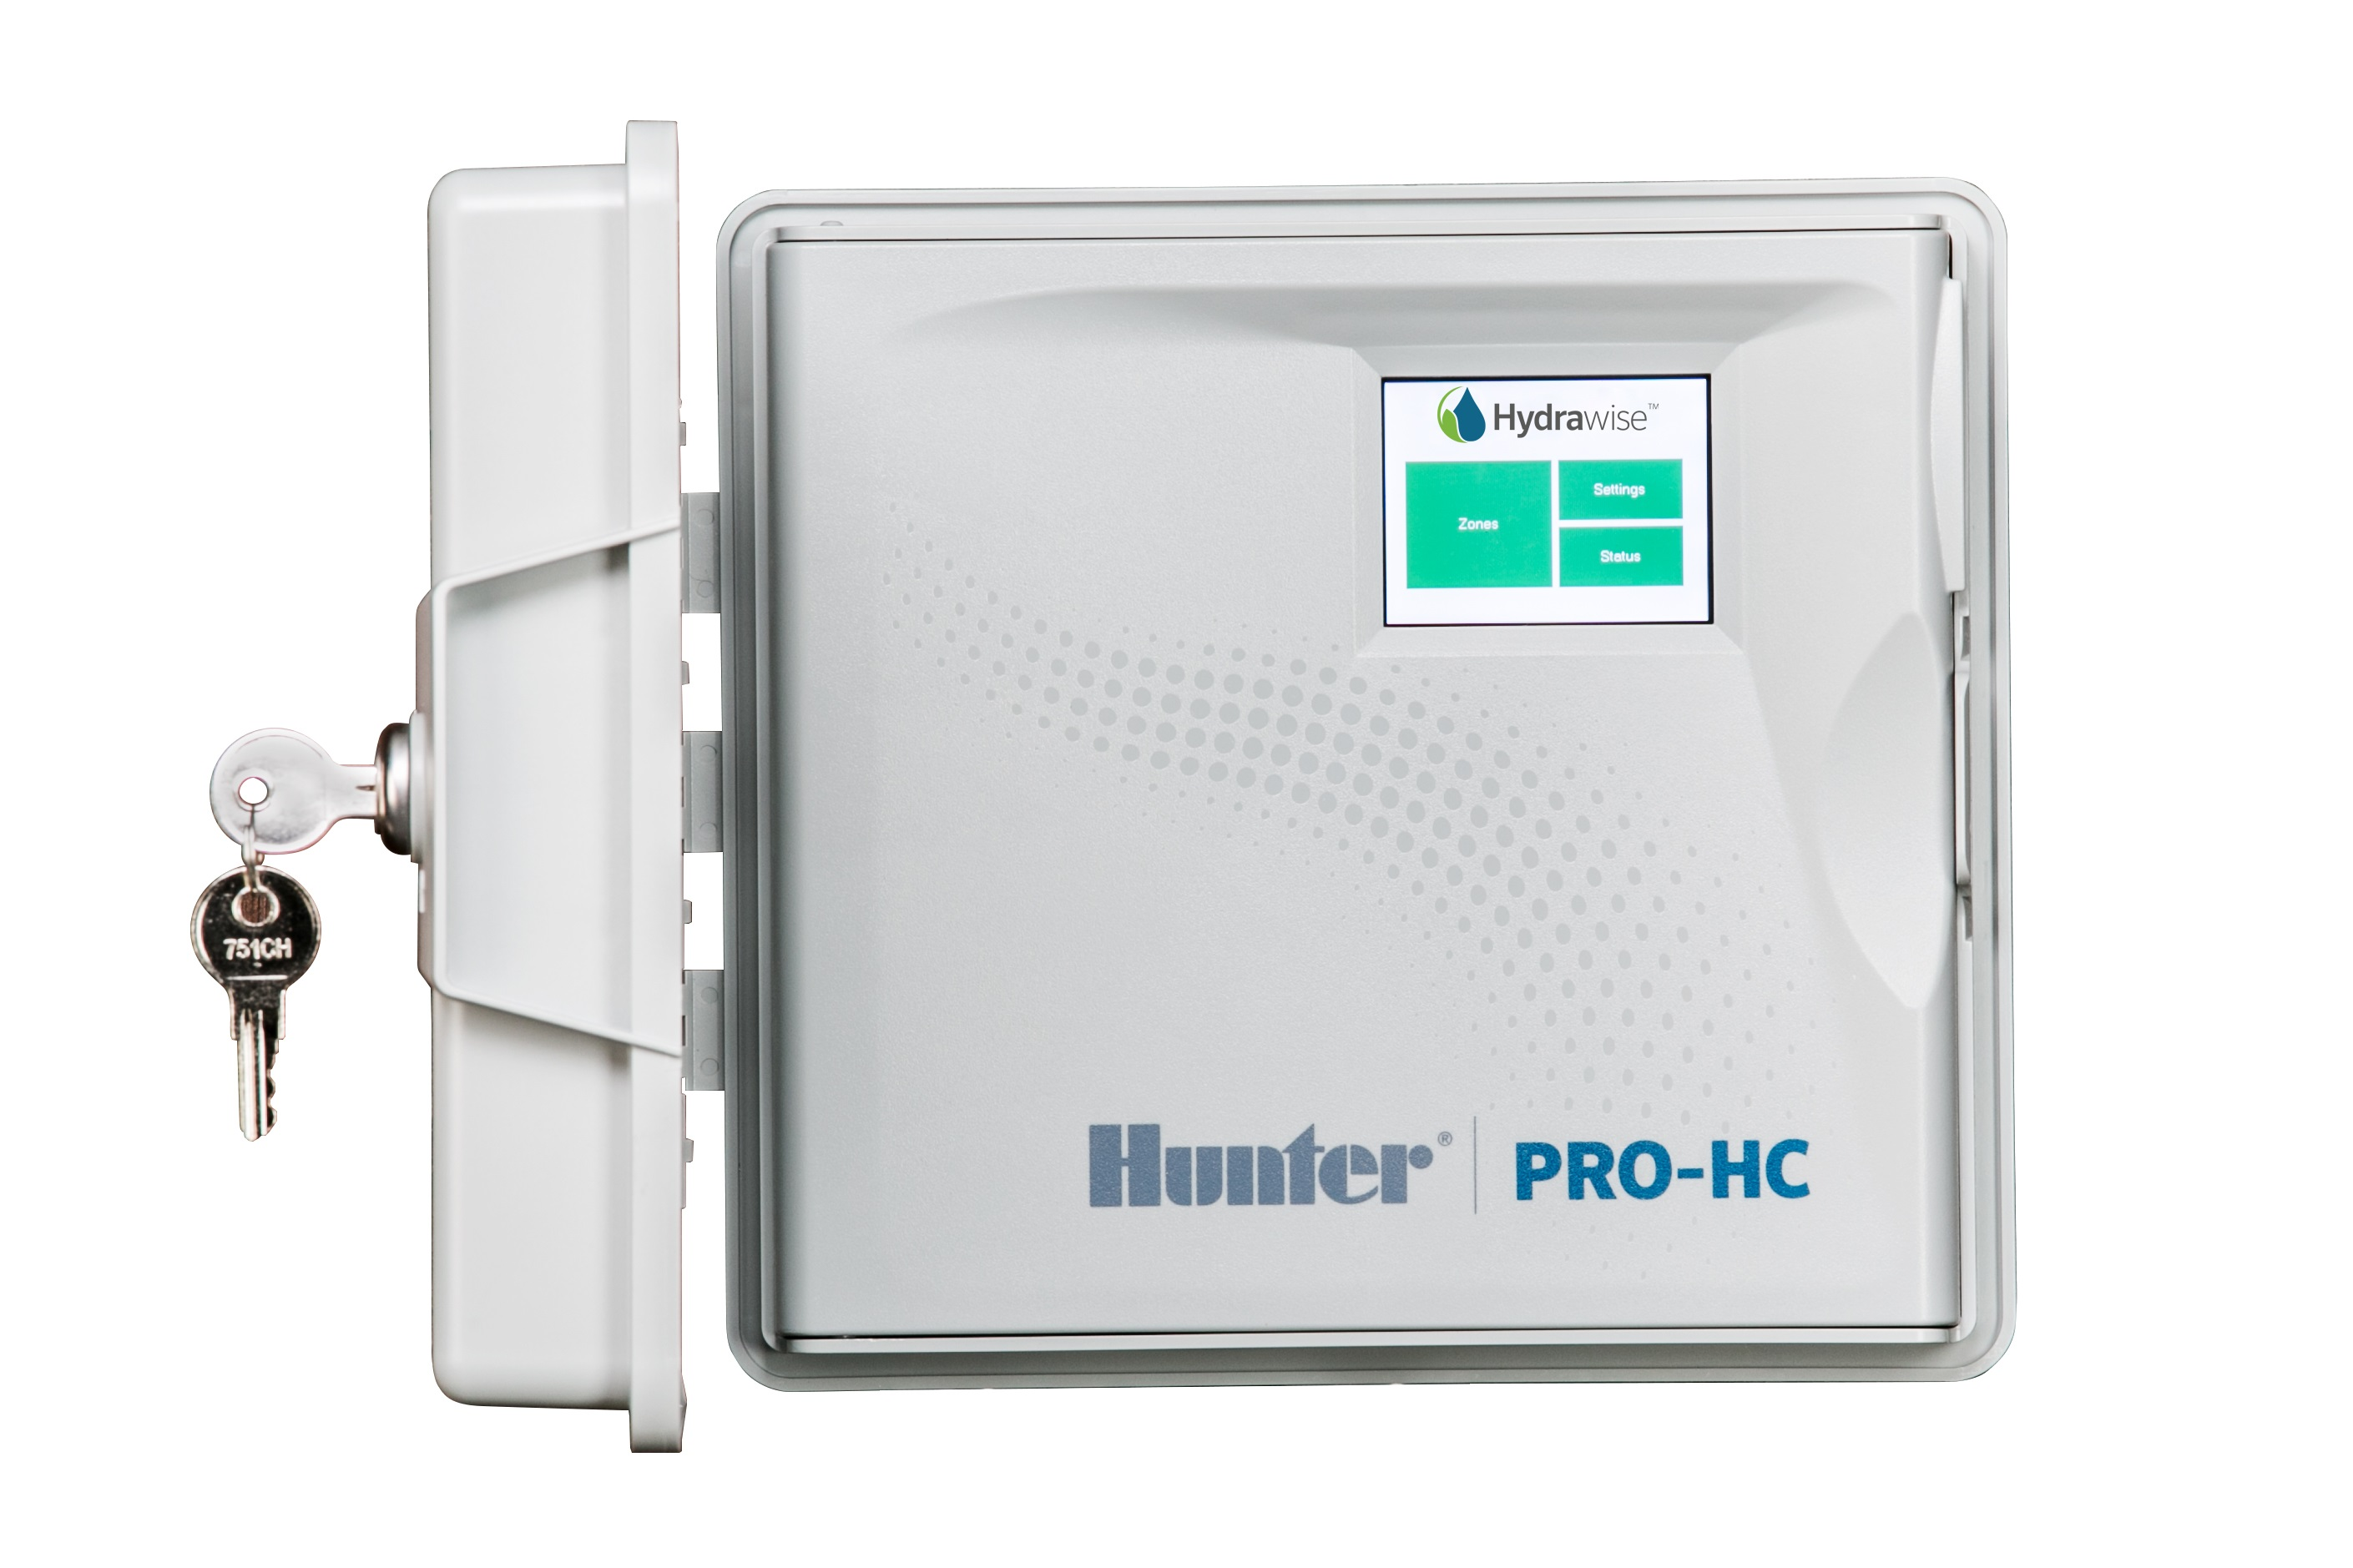 hunter hydrawise phc-1200 12 station wifi outdoor controller i